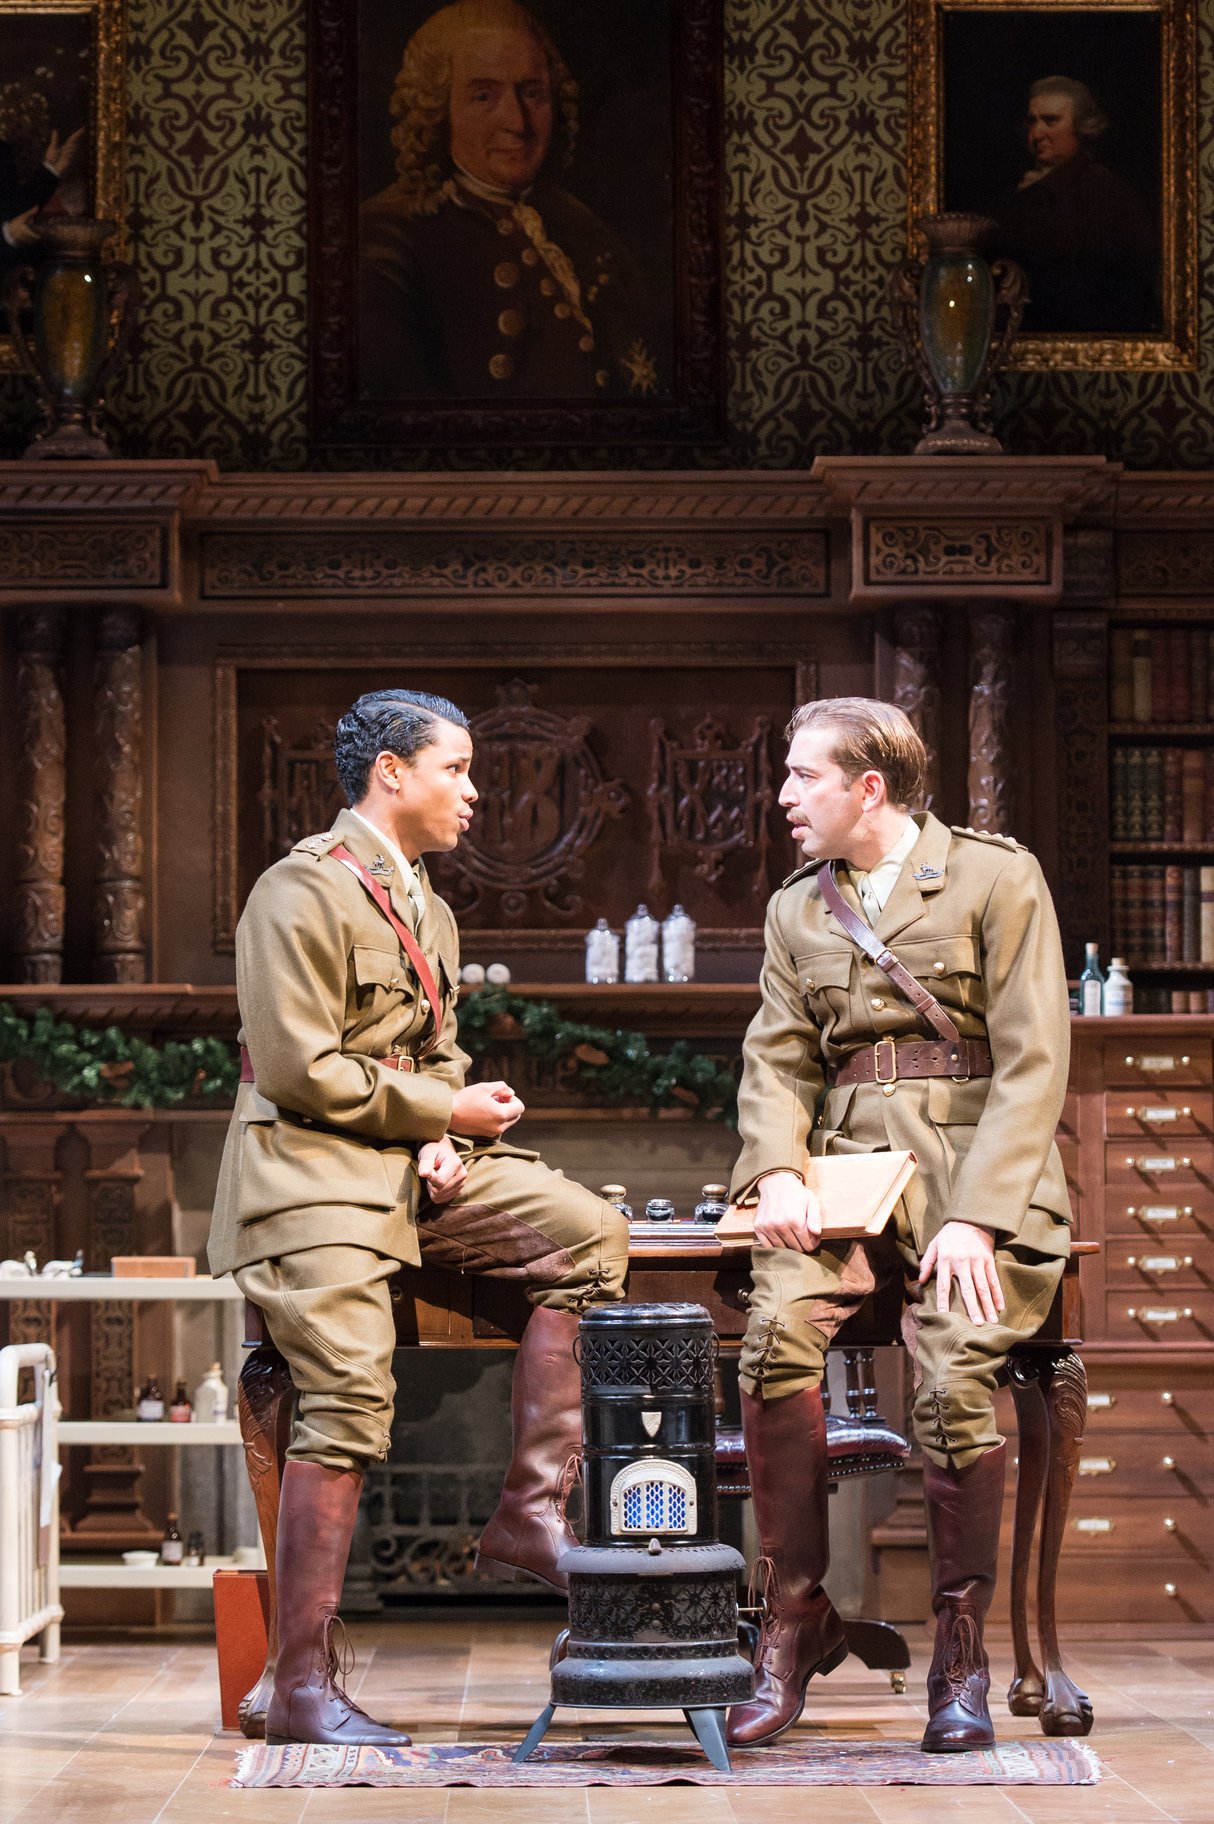 Claudio and Benedick in their soldier's uniforms.